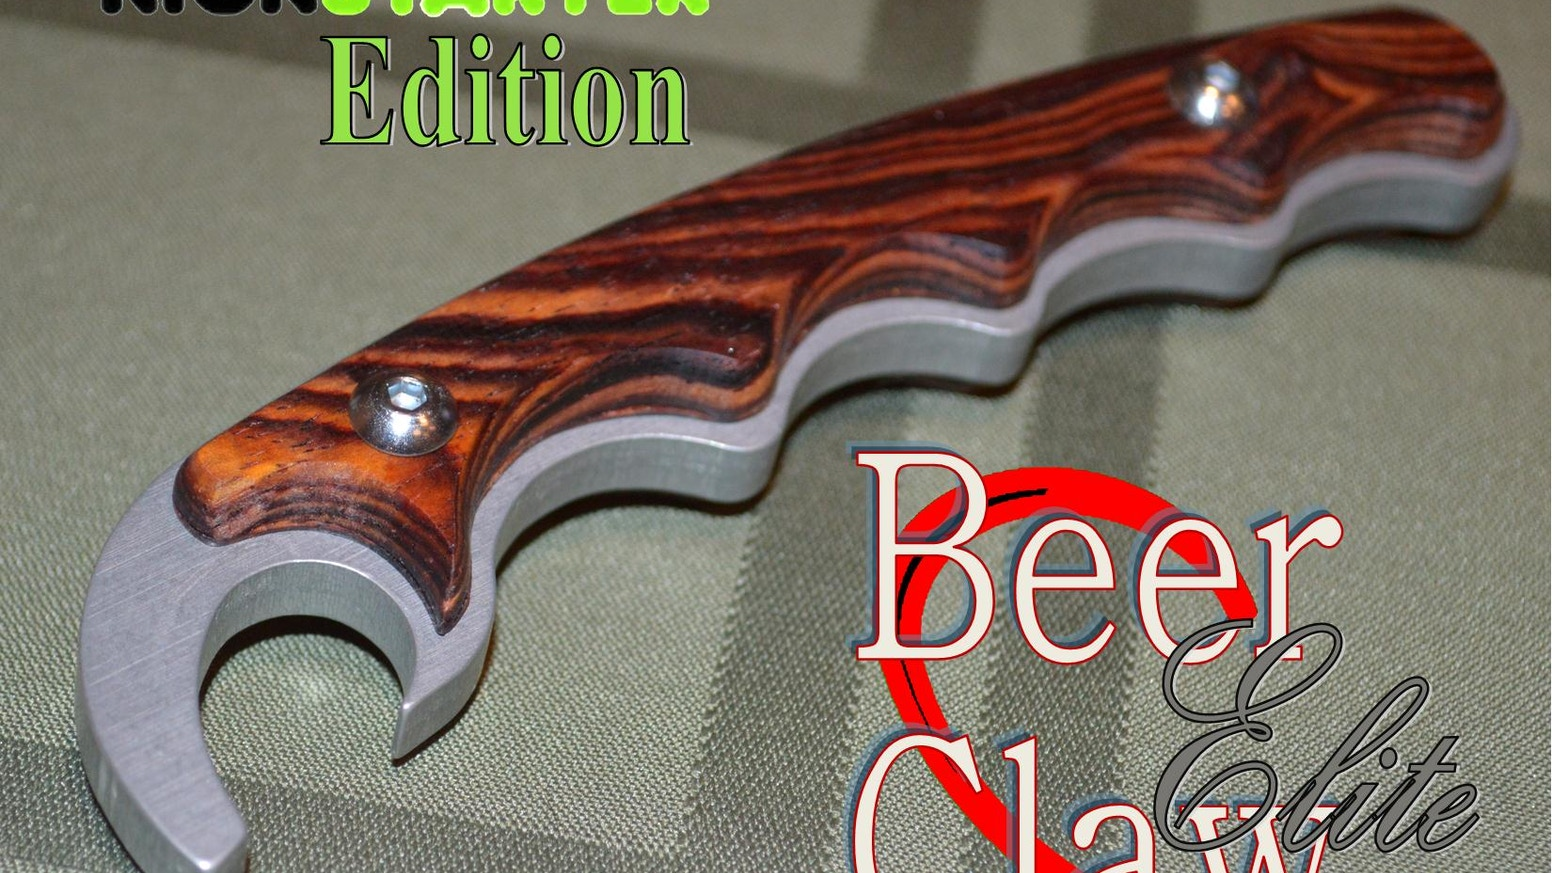 Beer-Claw. The most attractive and ergonomic bottle opener available. Made in America, get yours today! www.instagram.com/thebeerclaw wwww.facebook.com/TheBeerClaw. www.twitter.com/thebeerclaw